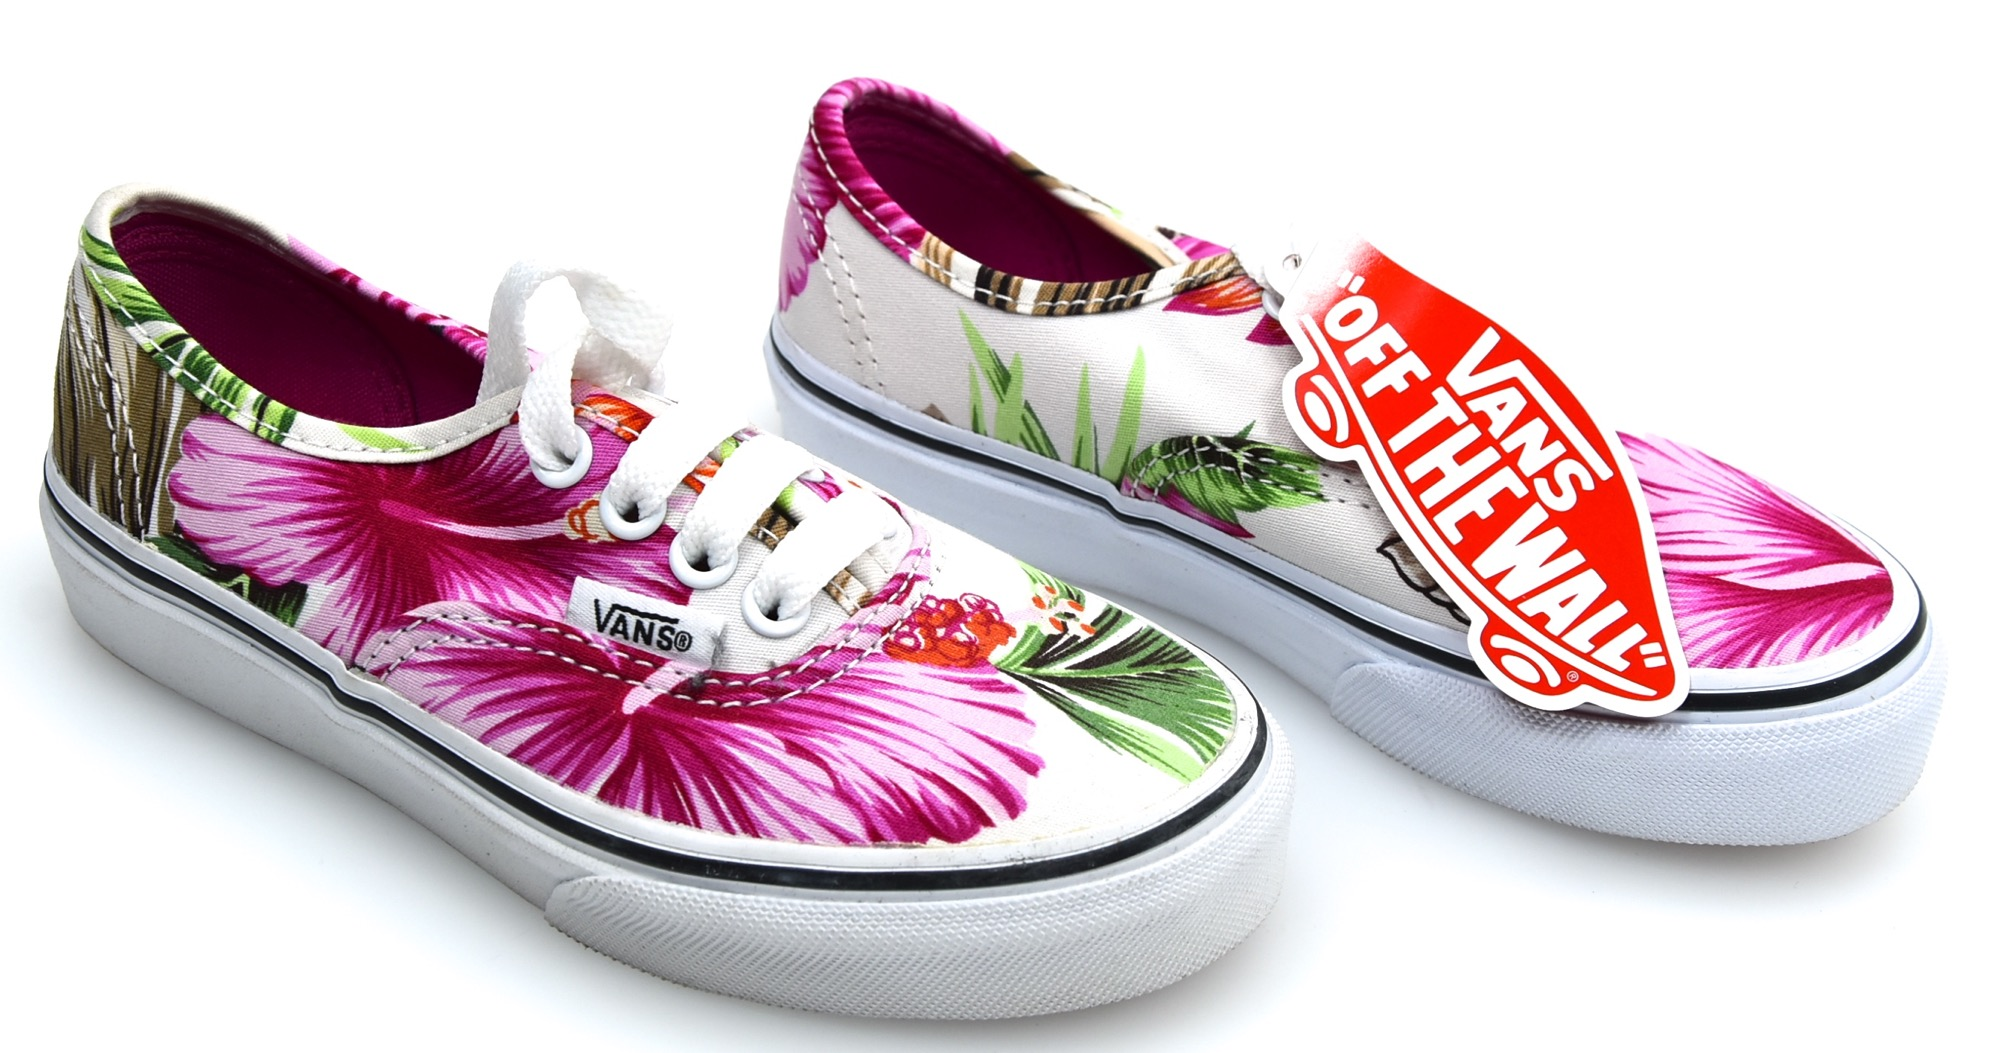 920b5bb39f Details about VANS JUNIOR GIRL SNEAKER SHOES CASUAL FREE TIME HAWAIIAN  FLORAL AUTHENTIC ZUQFG0